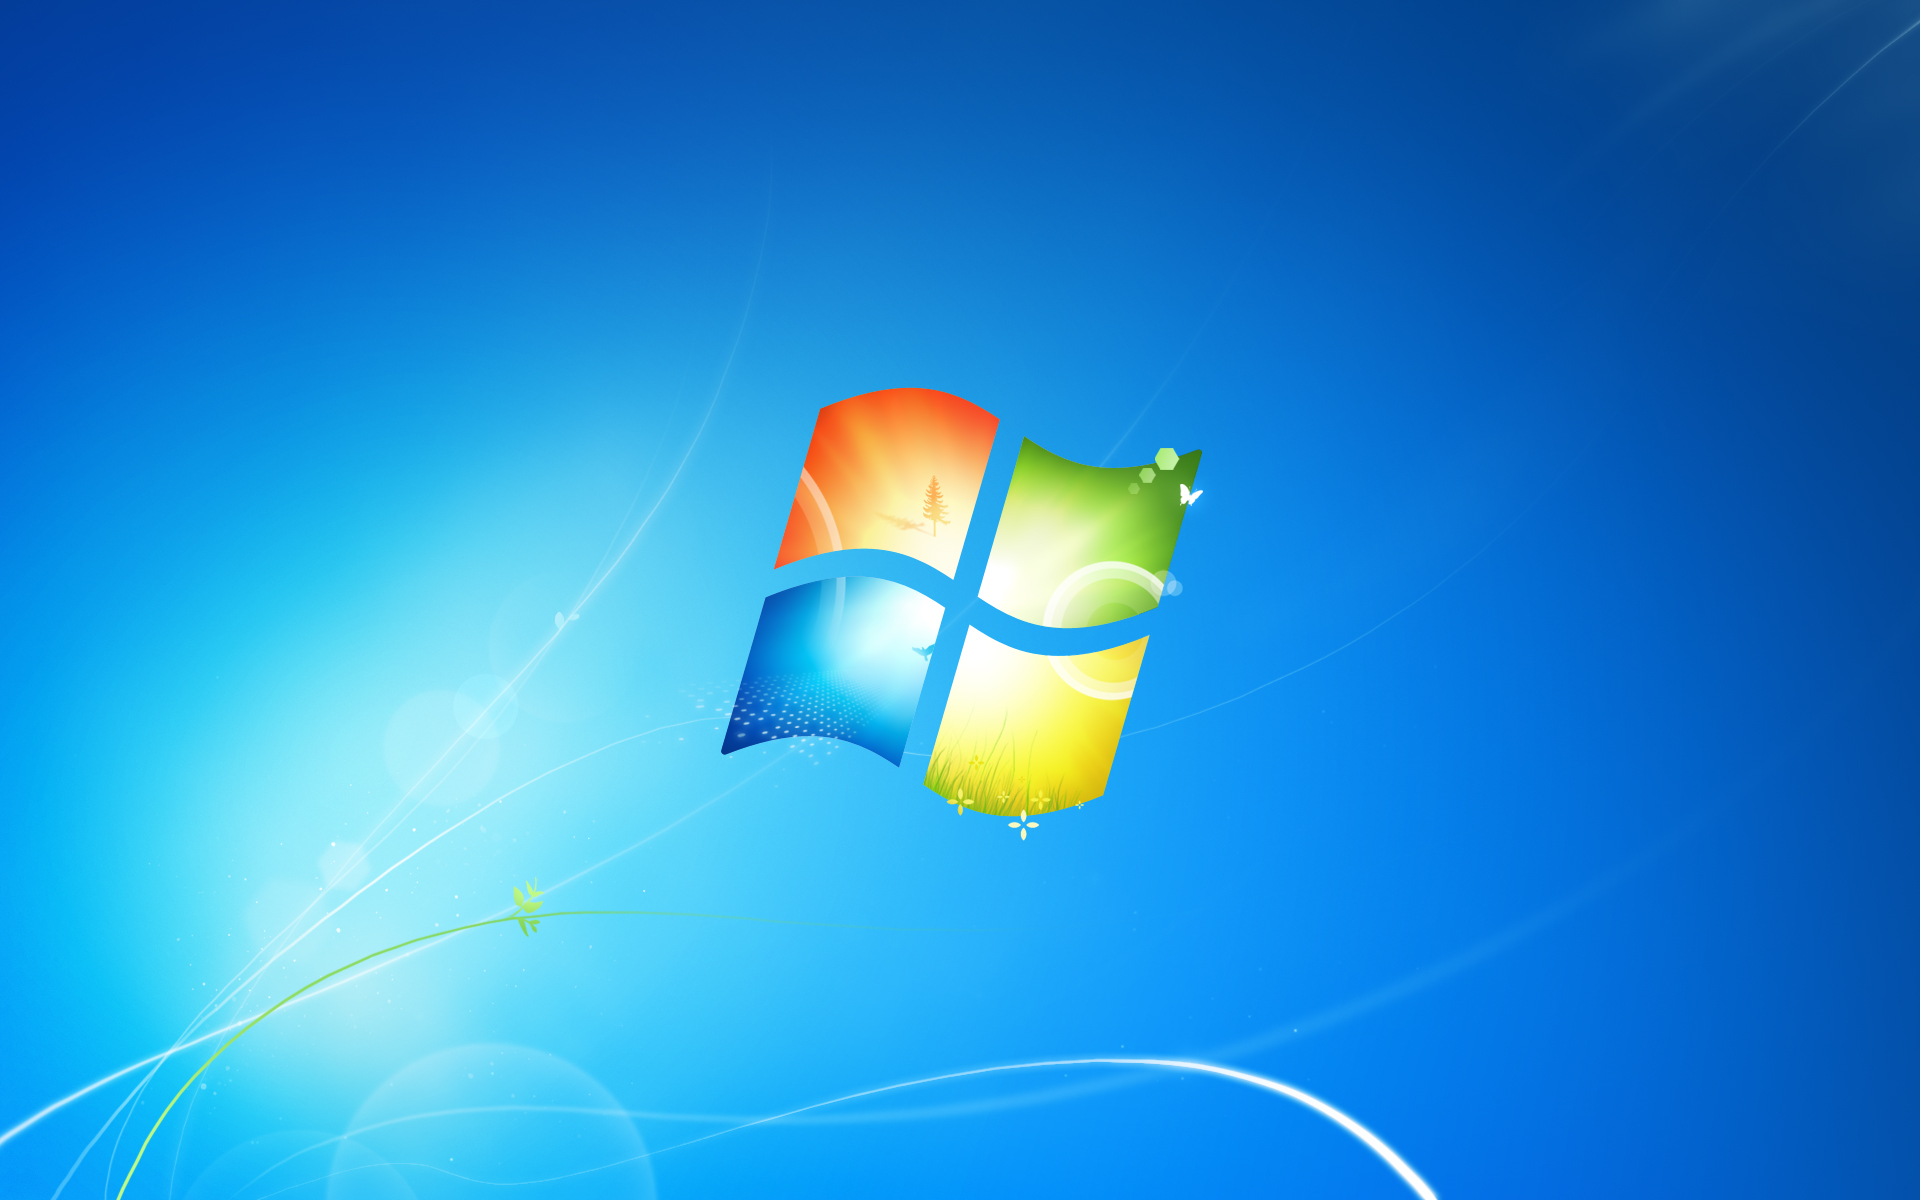 Windows Full HD Wallpaper and Background